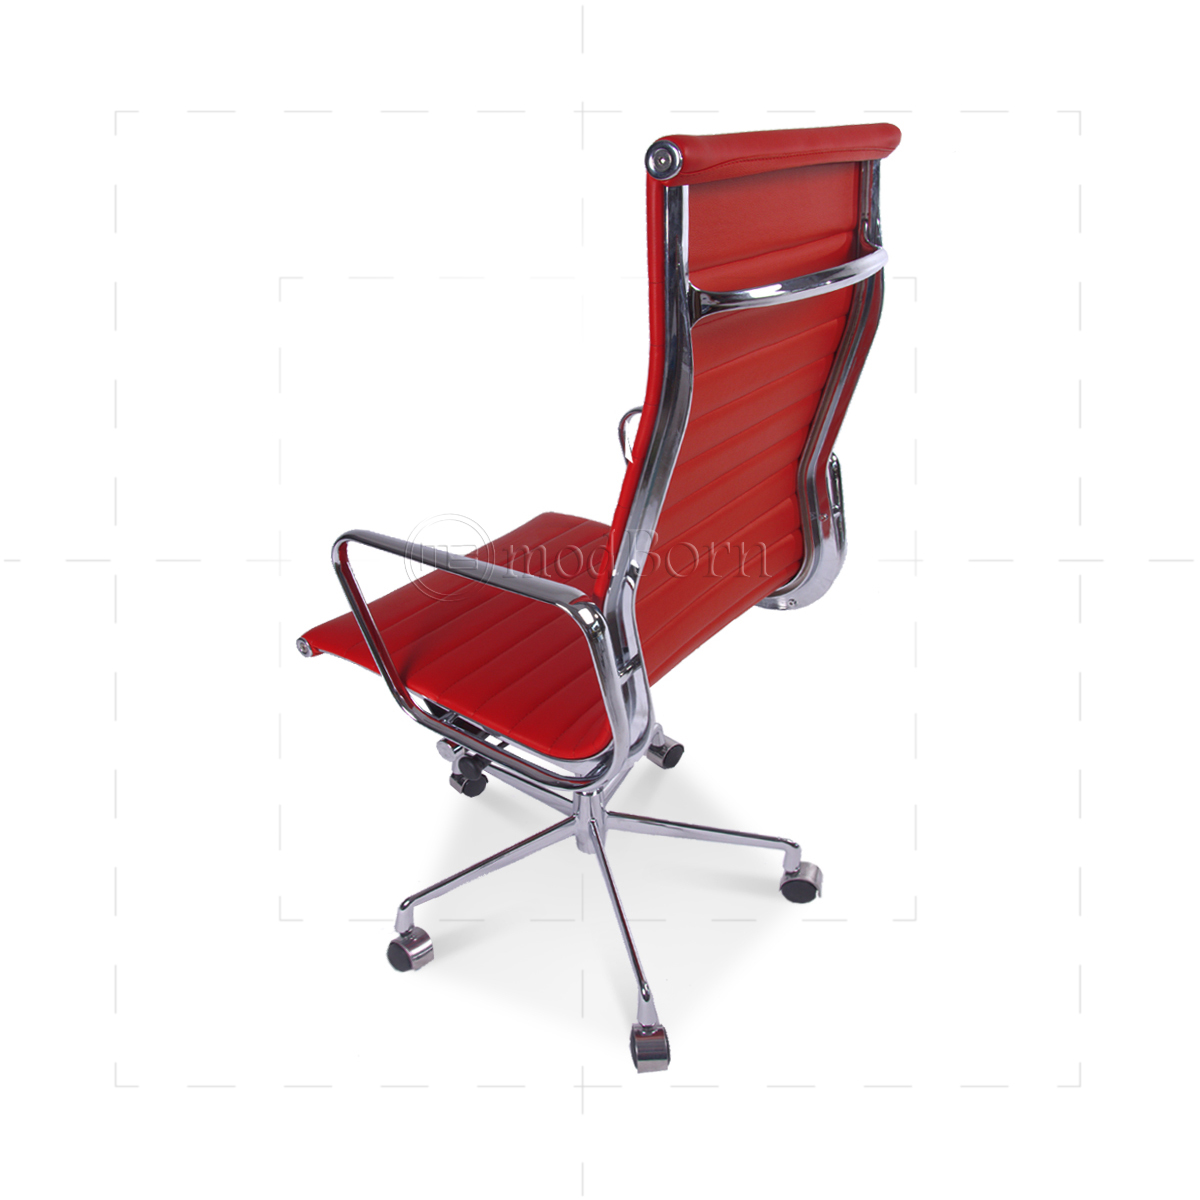 ea119 eames style office chair high back ribbed red leather replica. Black Bedroom Furniture Sets. Home Design Ideas